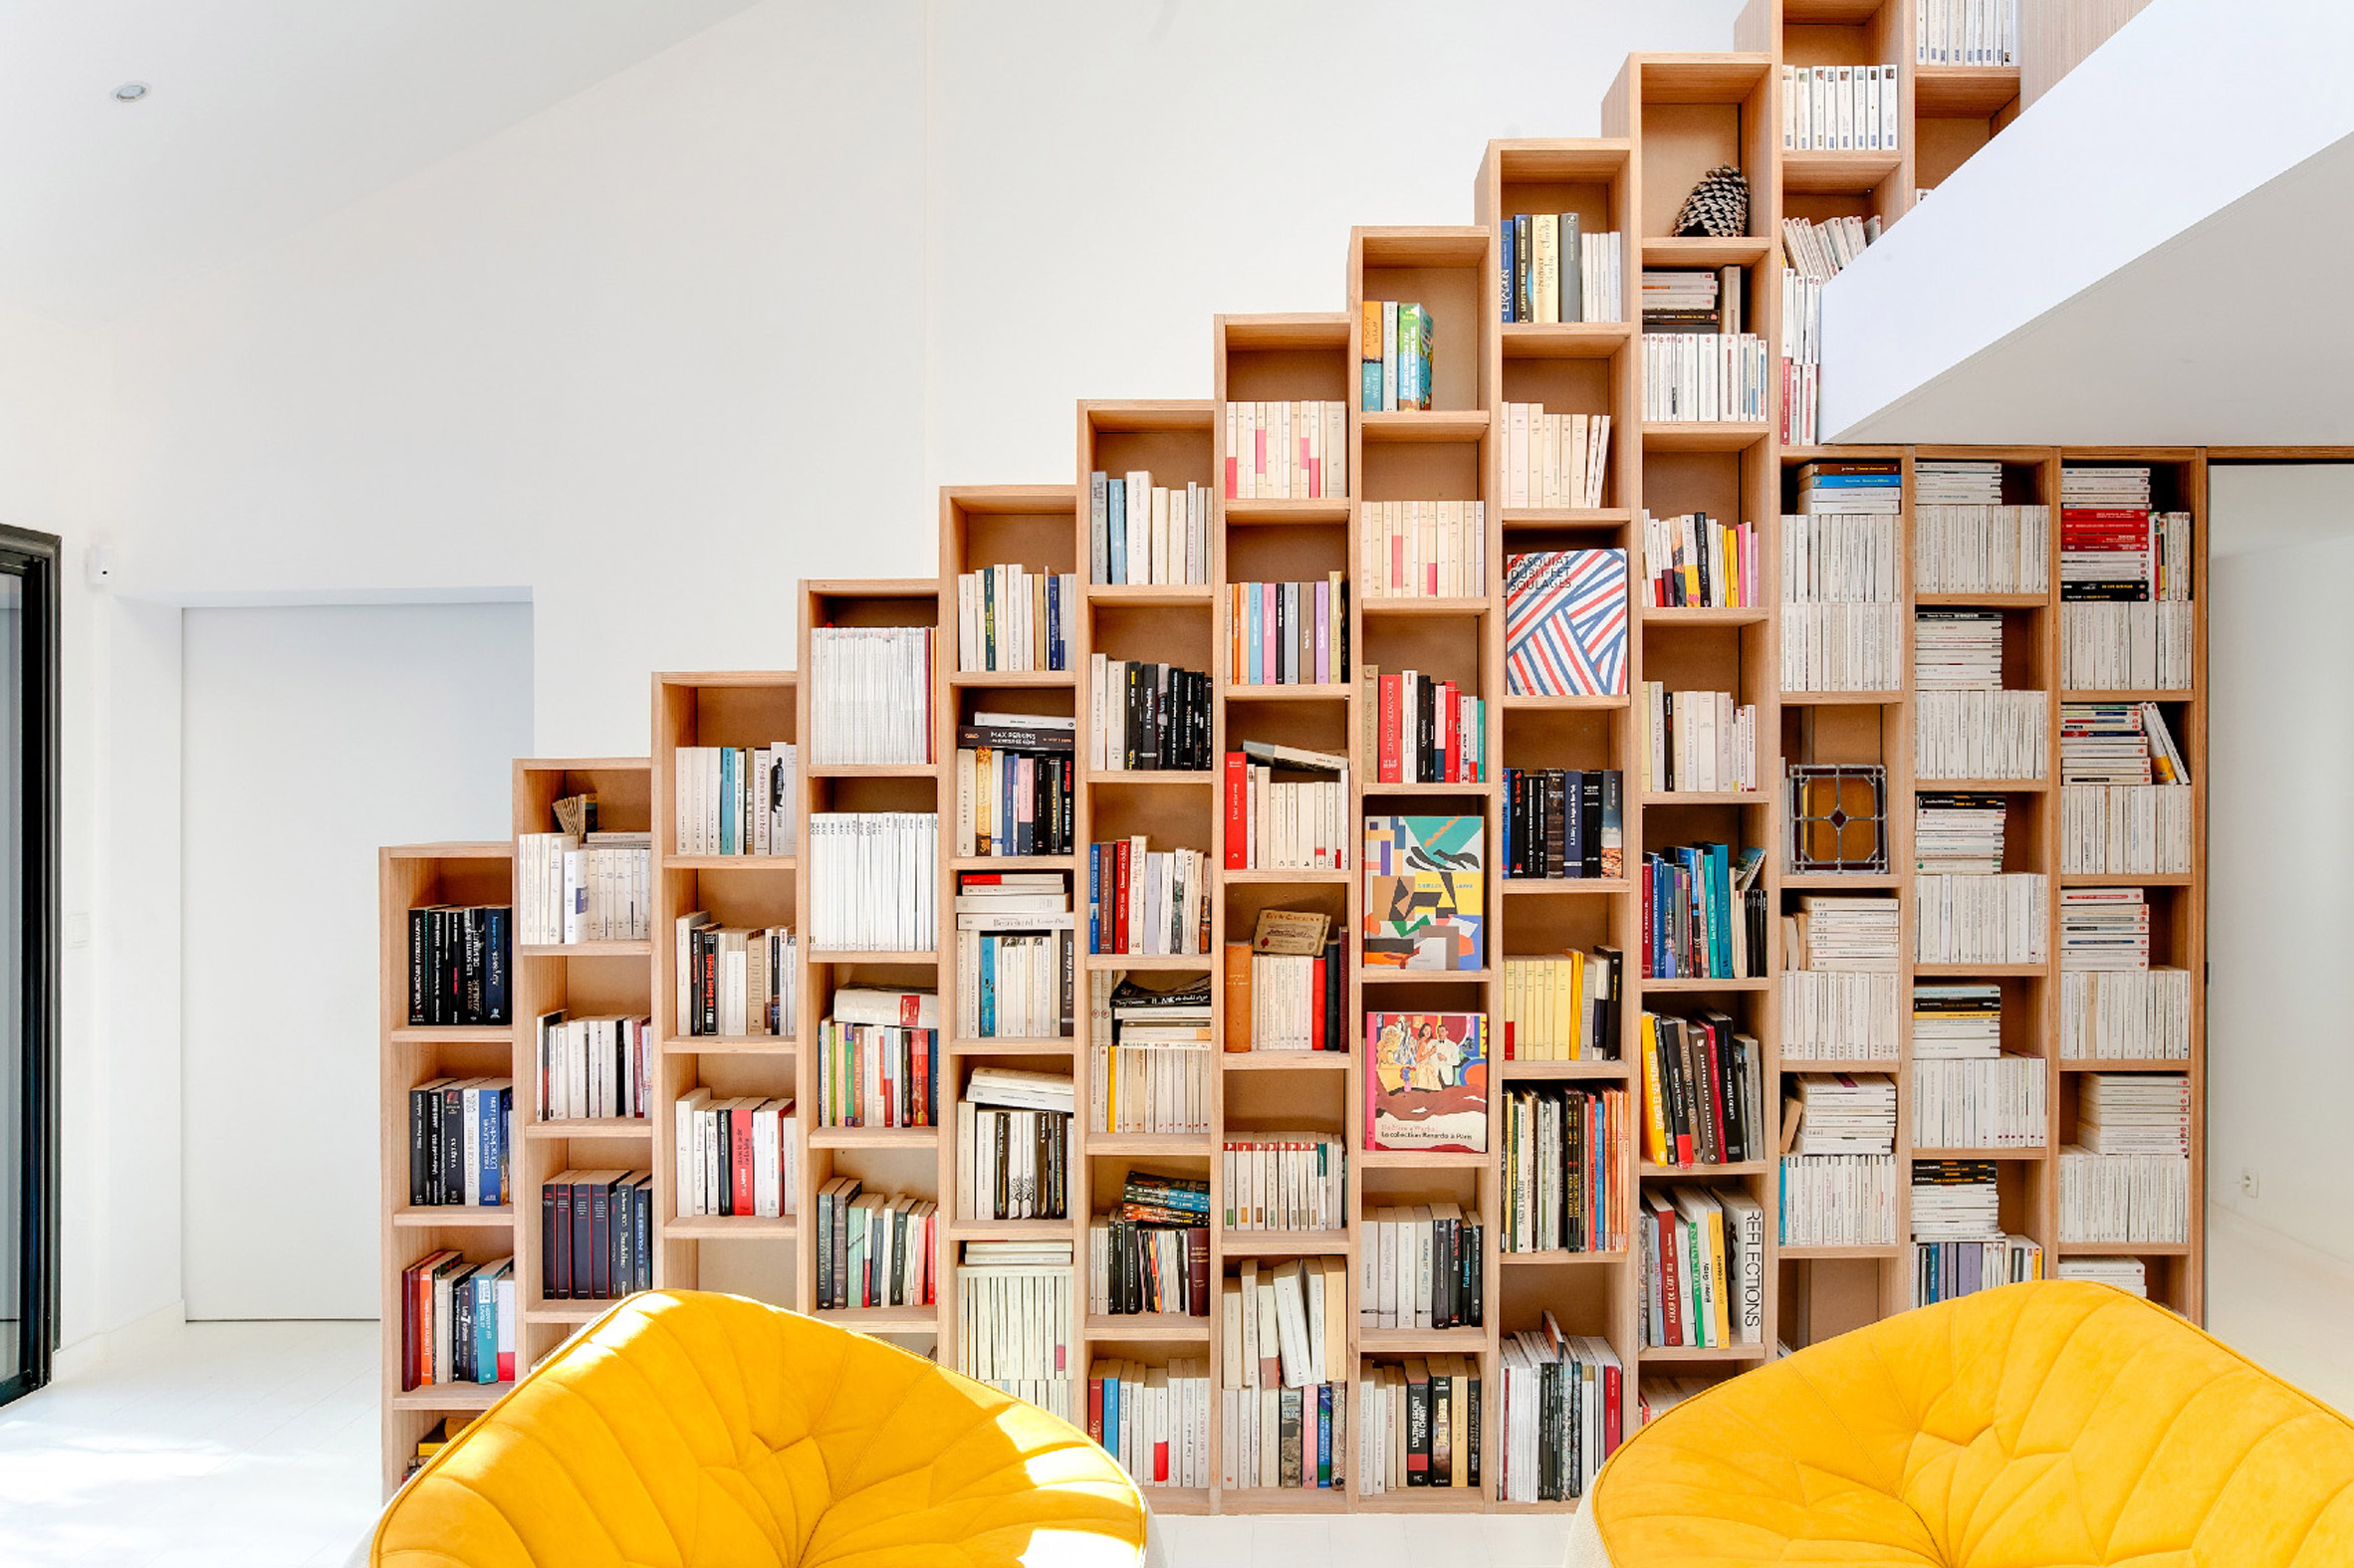 Stepped shelving creates extra storage in Bookshelf House by Andrea Mosca